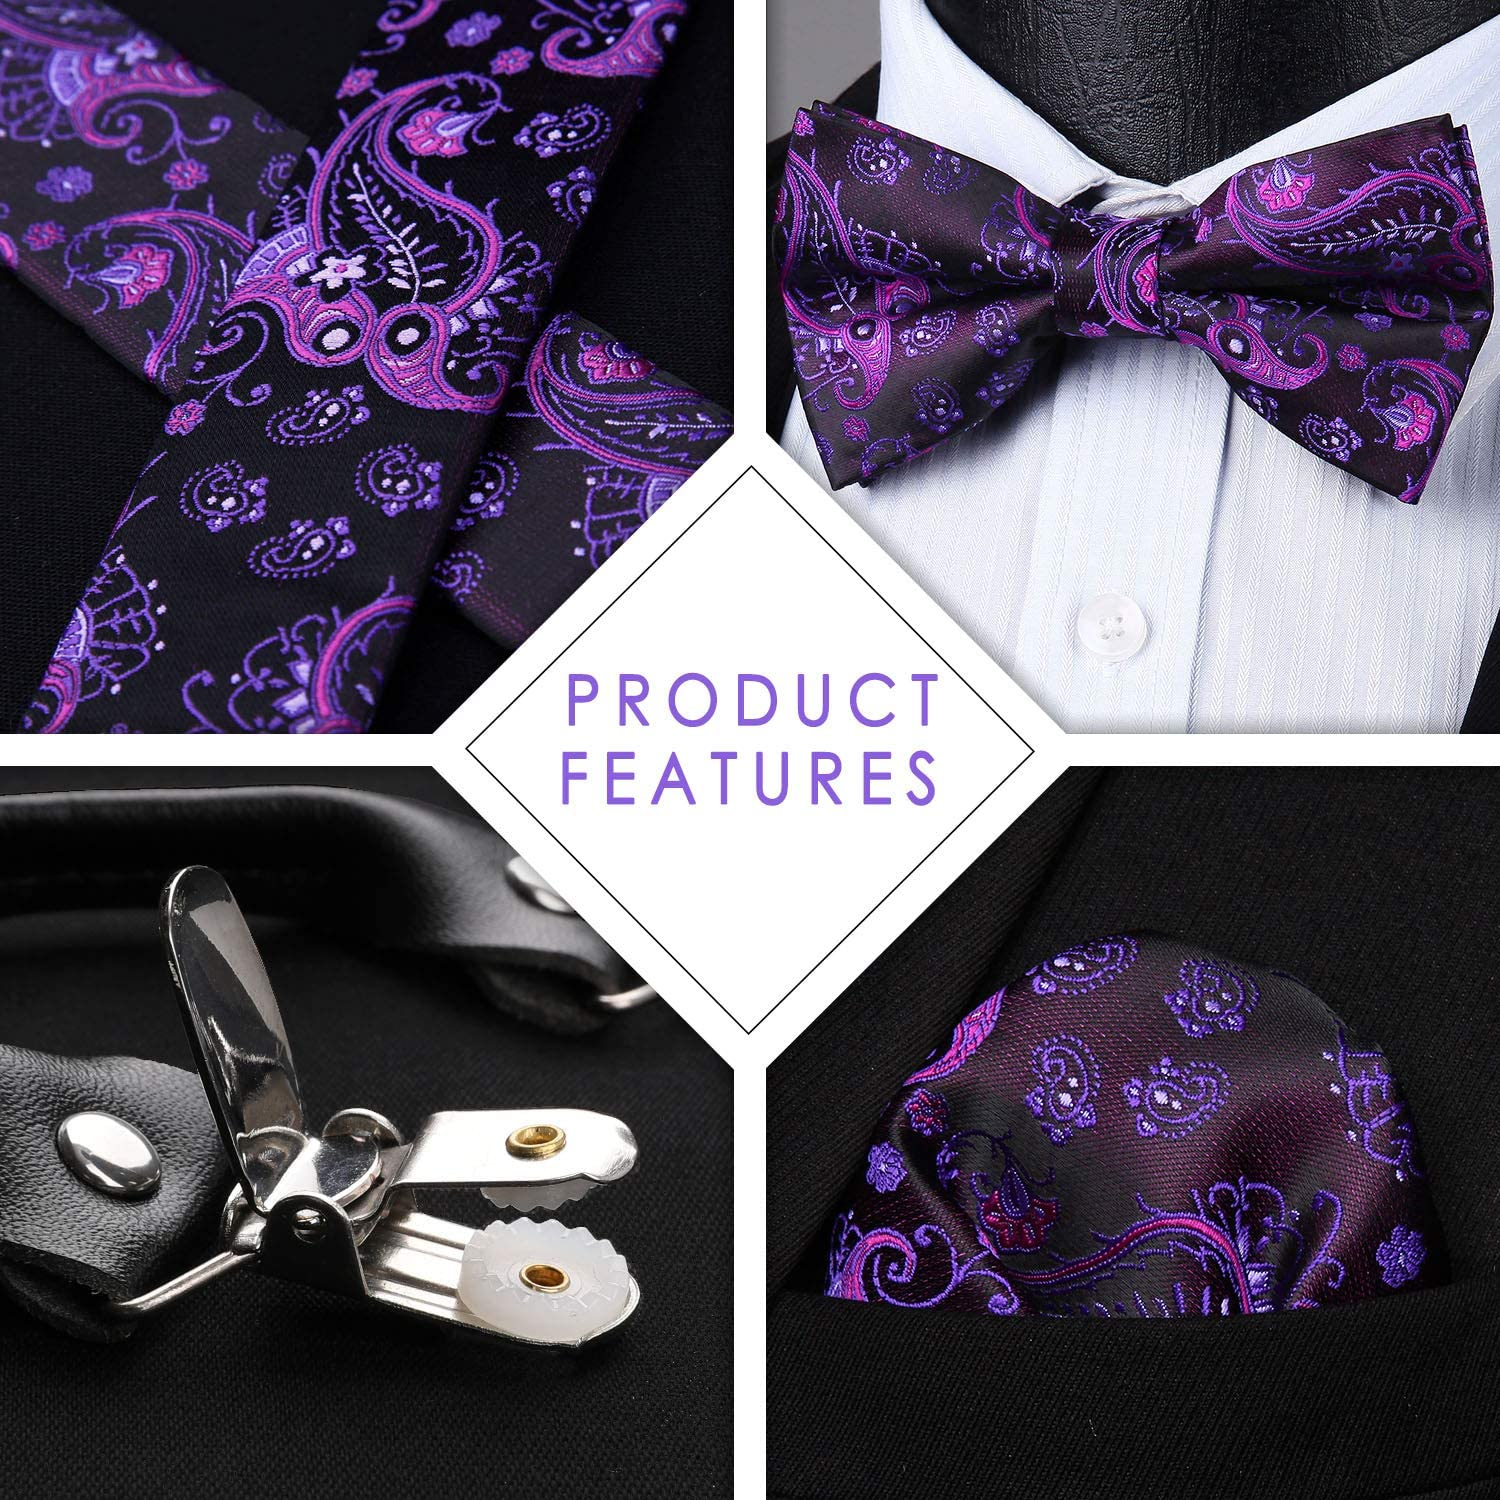 HISDERN Floral 6 Clips Suspenders /& Pre Tie Bow Tie and Pocket Square Set Y Shape Adjustable Braces